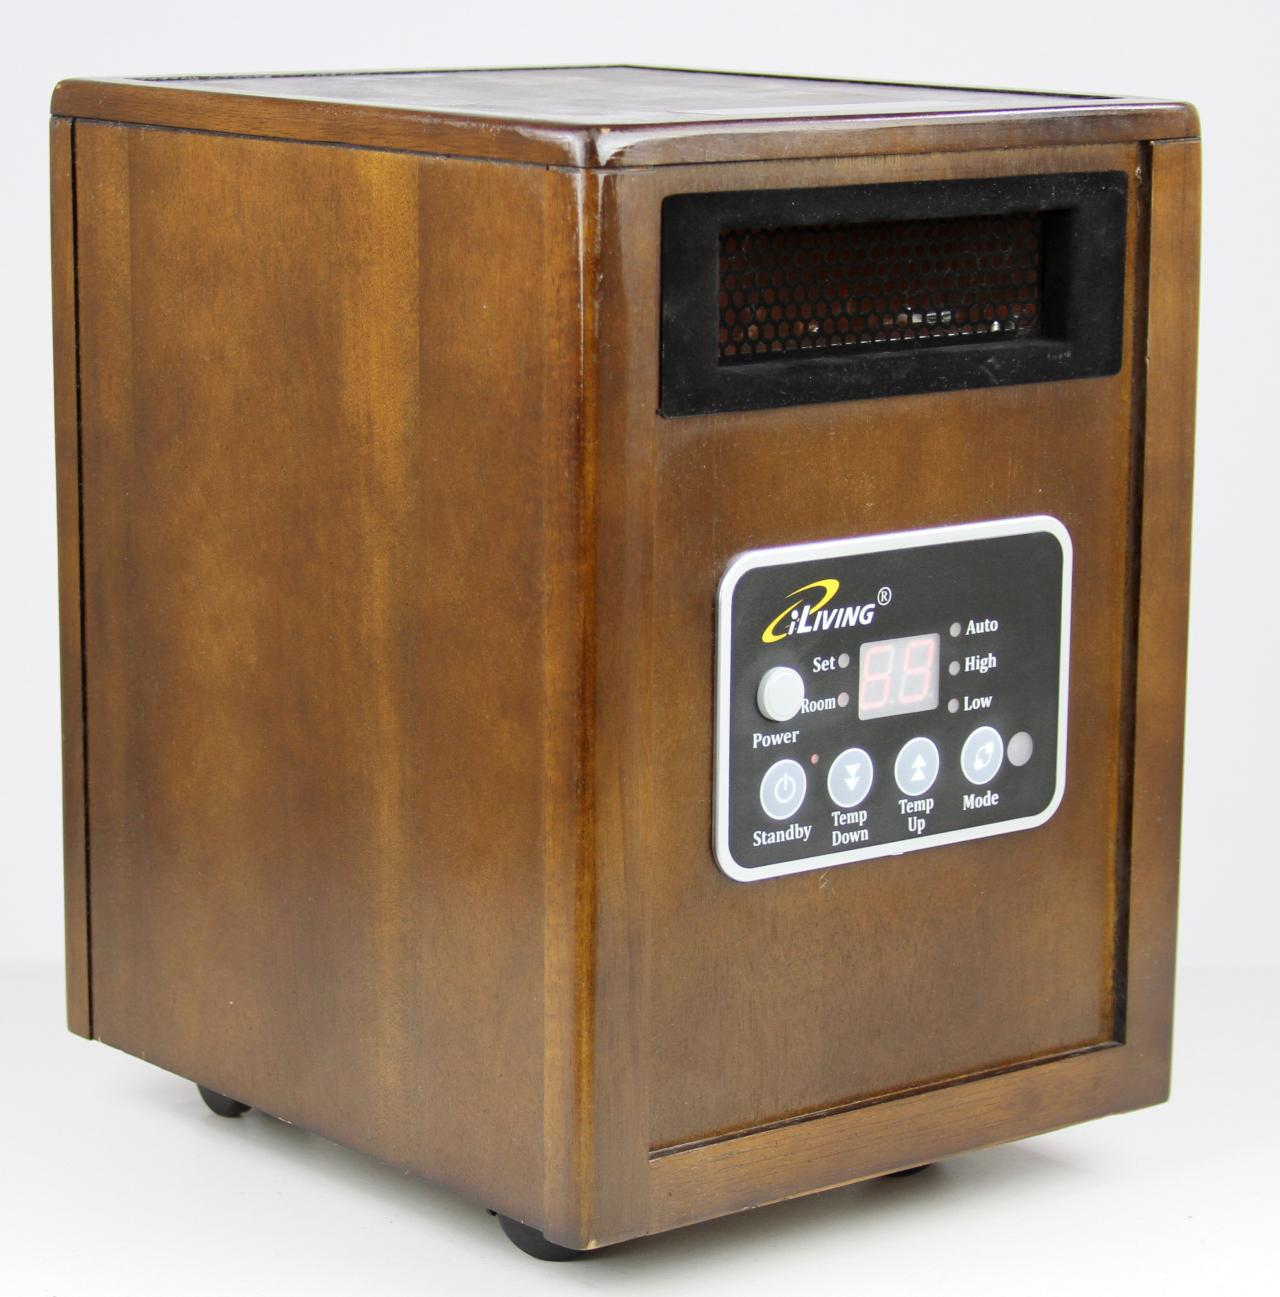 2012 best infrared quartz space heater 1500w 2x more hot air images